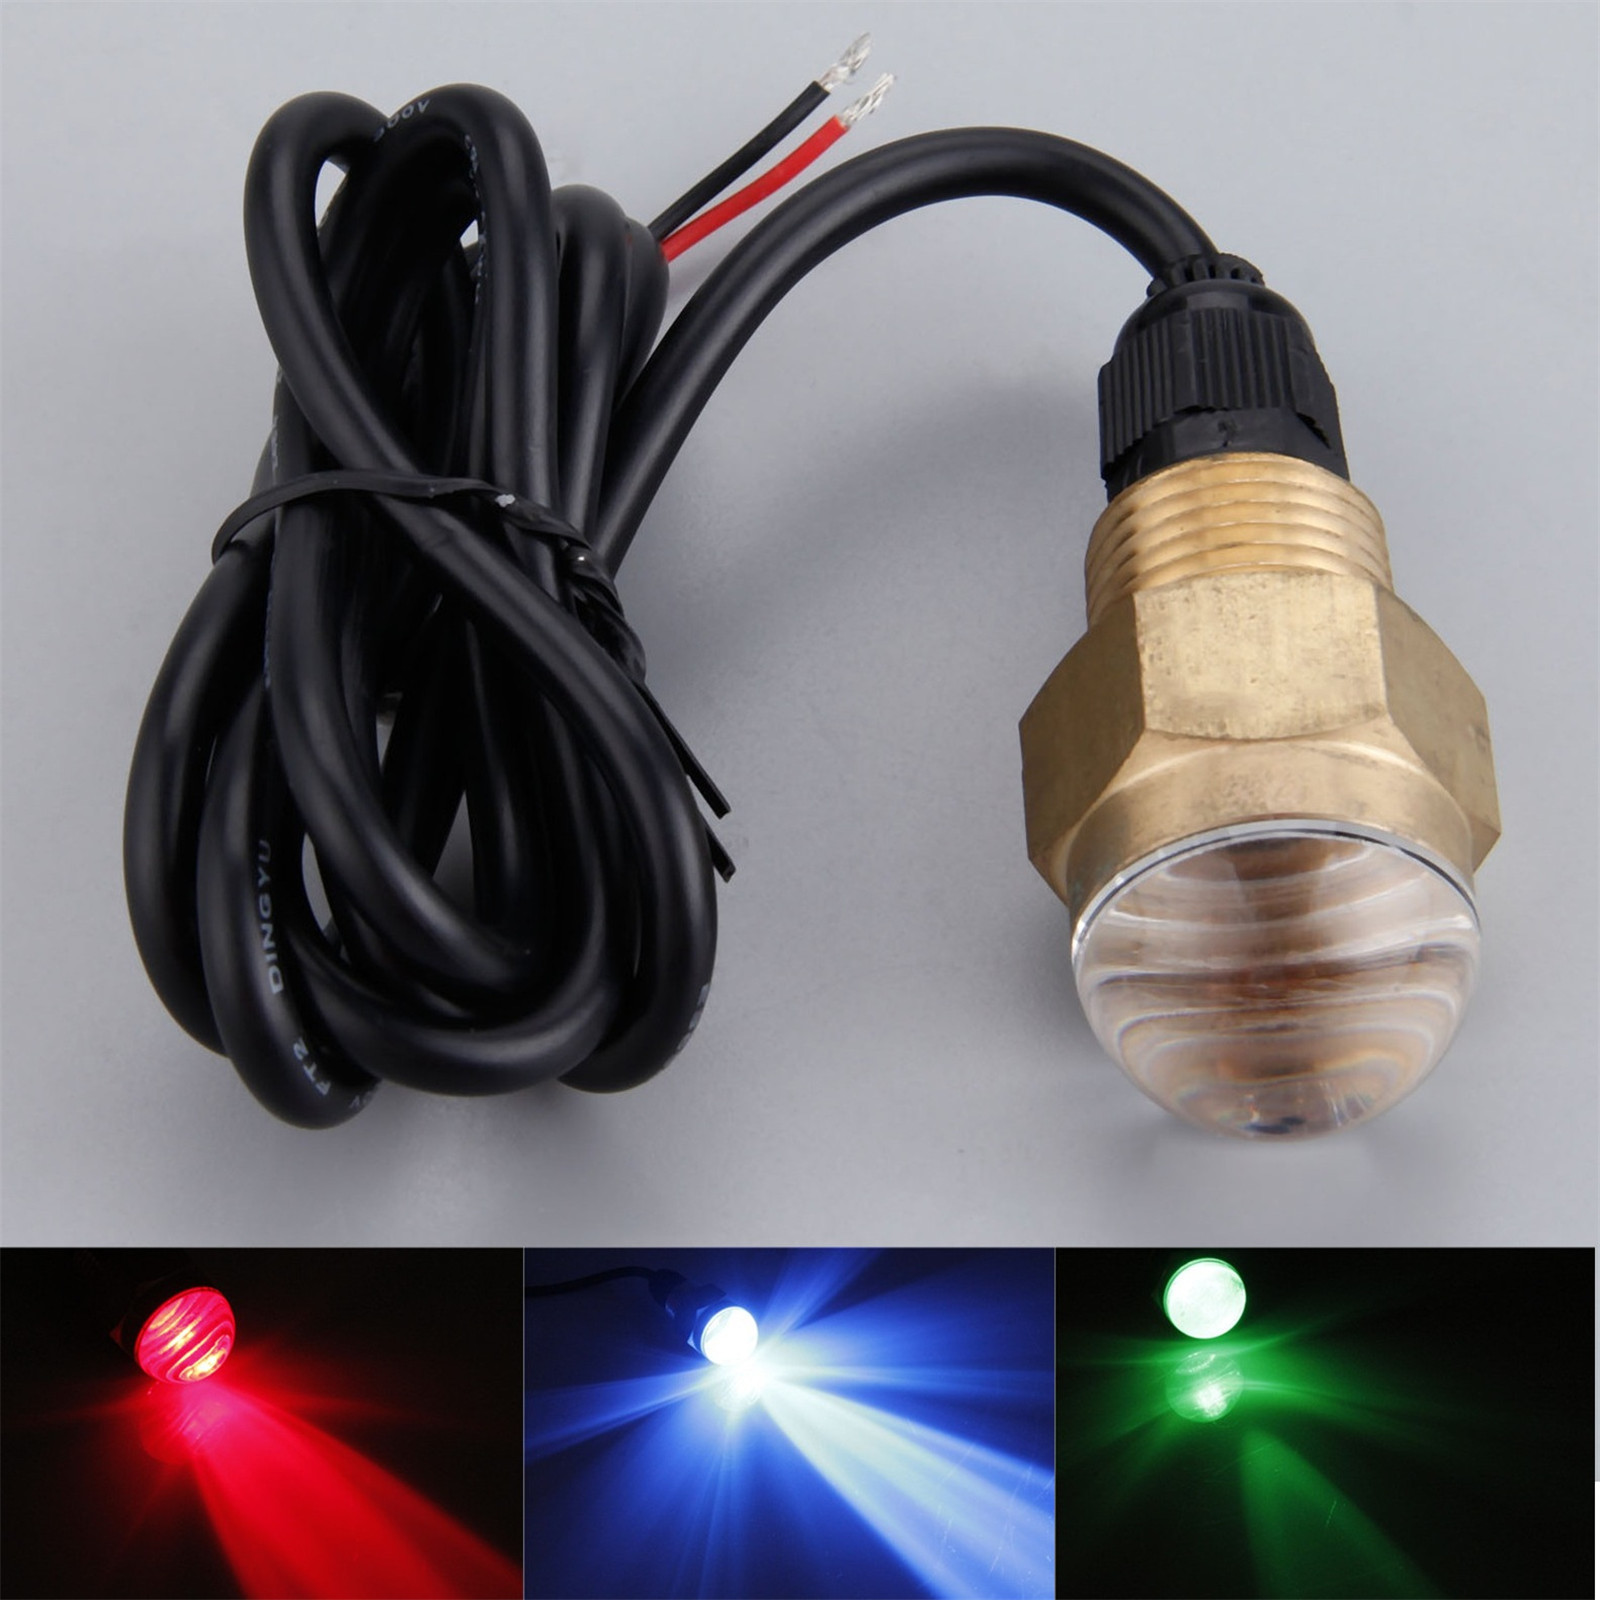 1pc Boat Yacht Brass 12V DC 12W Underwater Lamp Super Bright Blue/ Red/ Green Led Light 3 Colors Rowing Boats Accessories Marine